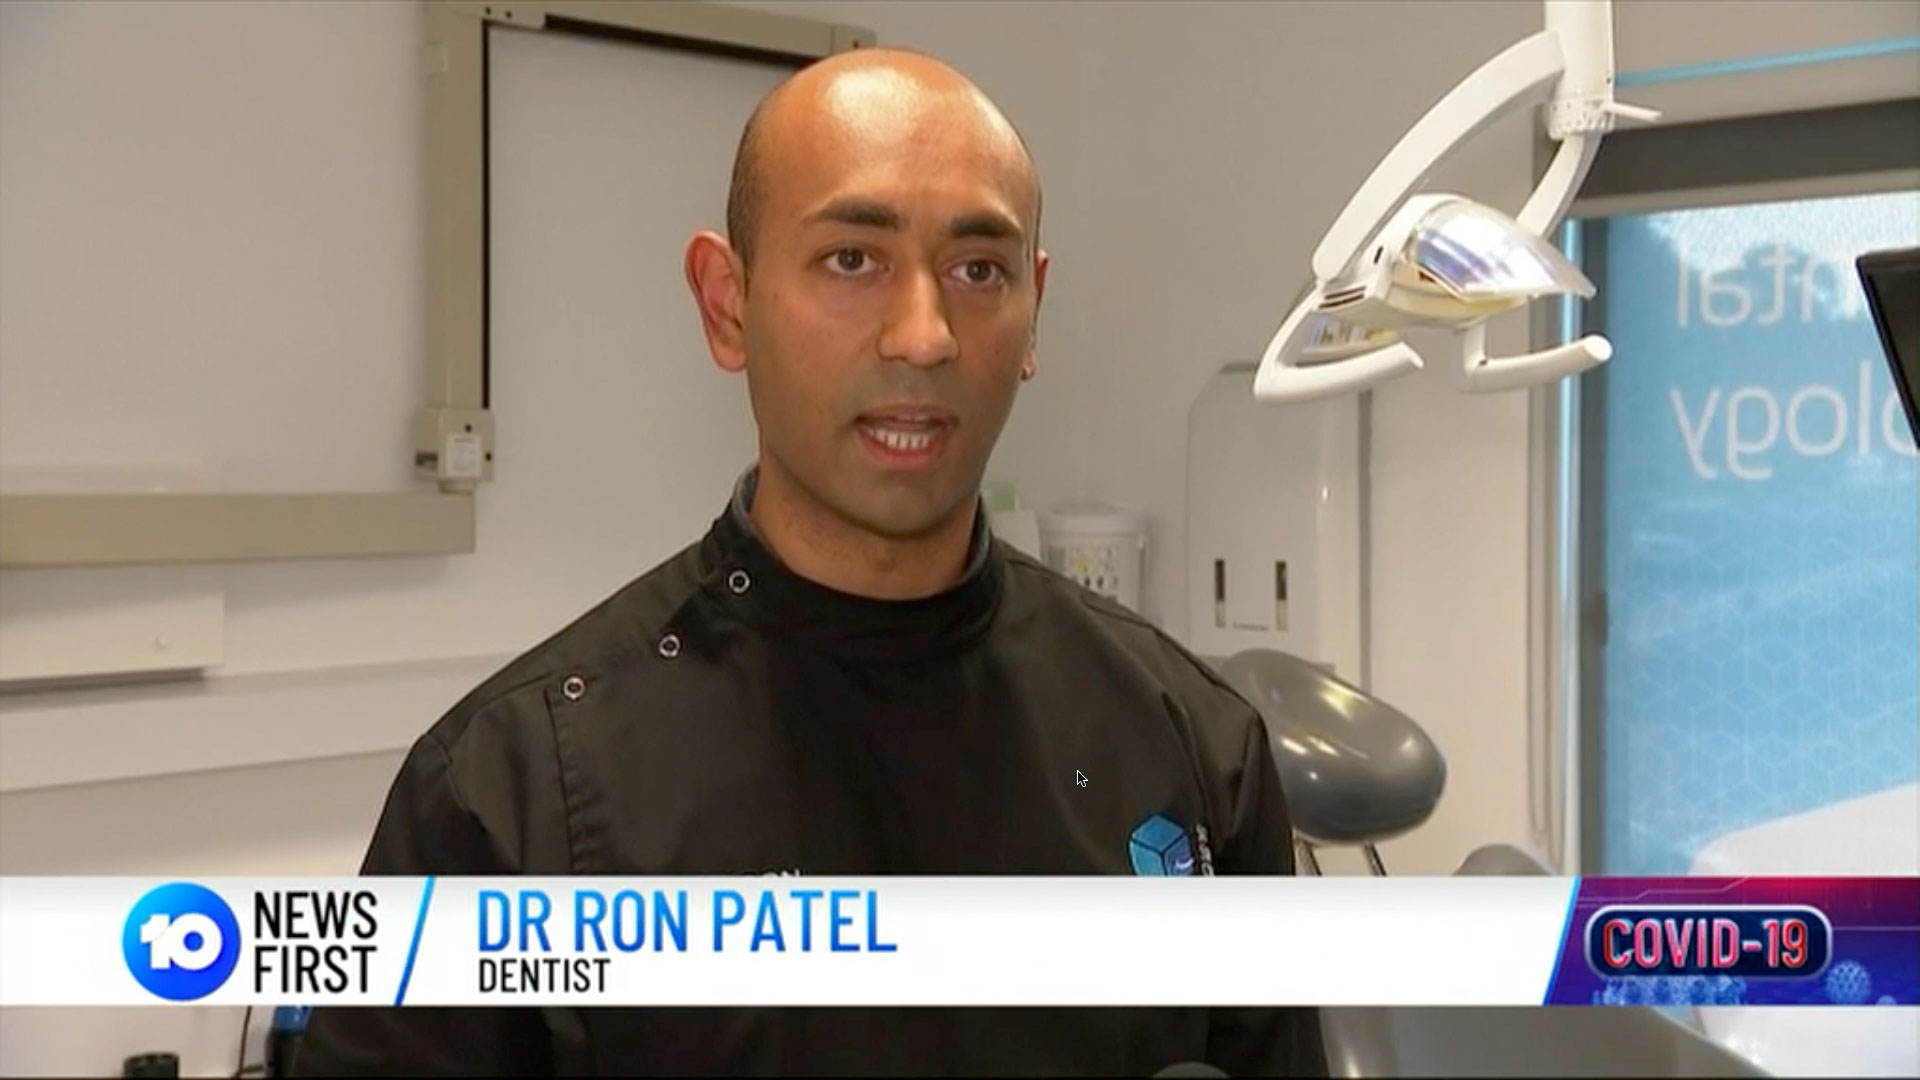 Dr Ron Patel Oakleigh Dentist 10 News First 16 September 2020